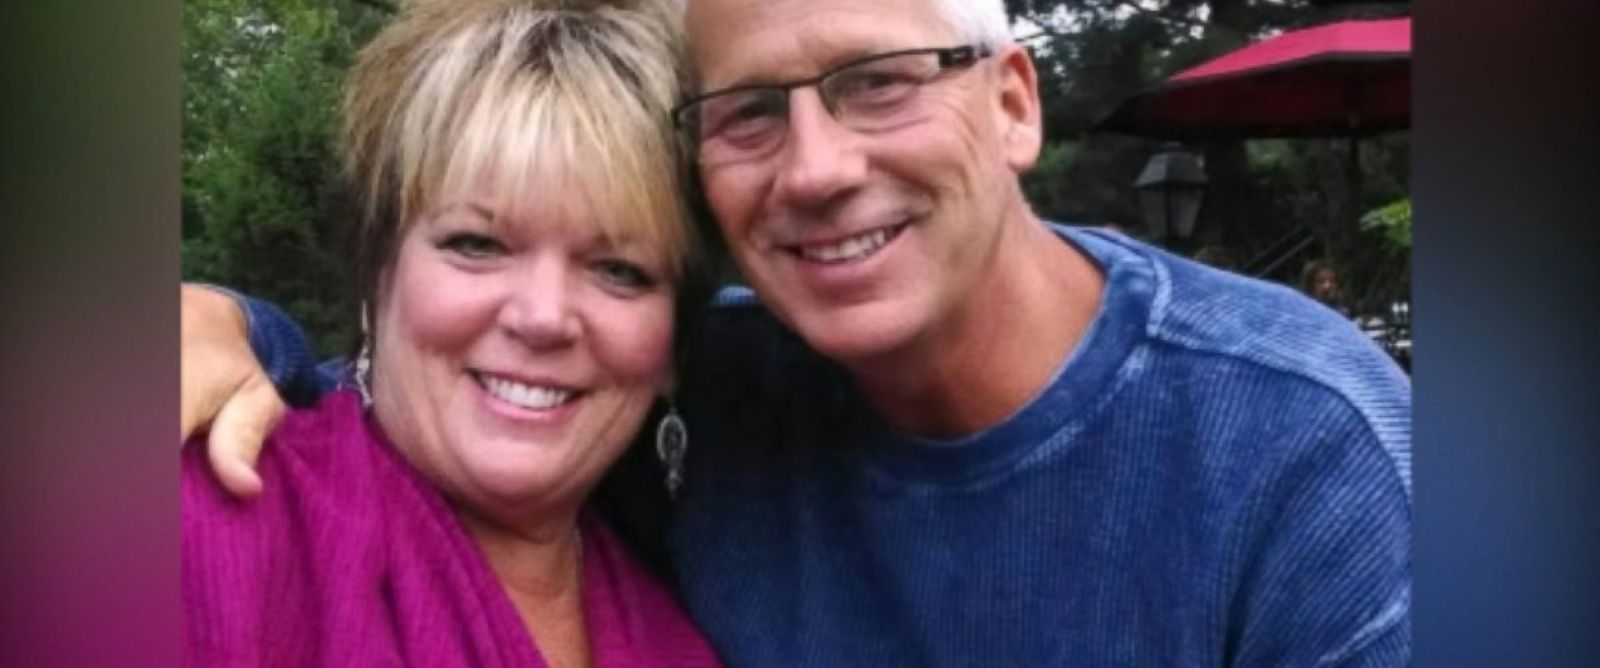 PHOTO: Sharon Budd, 52, from Uniontown, Ohio, was critically injured after getting hit by a rock thrown from a highway overpass in a July 10, 2014 accident, authorities say.